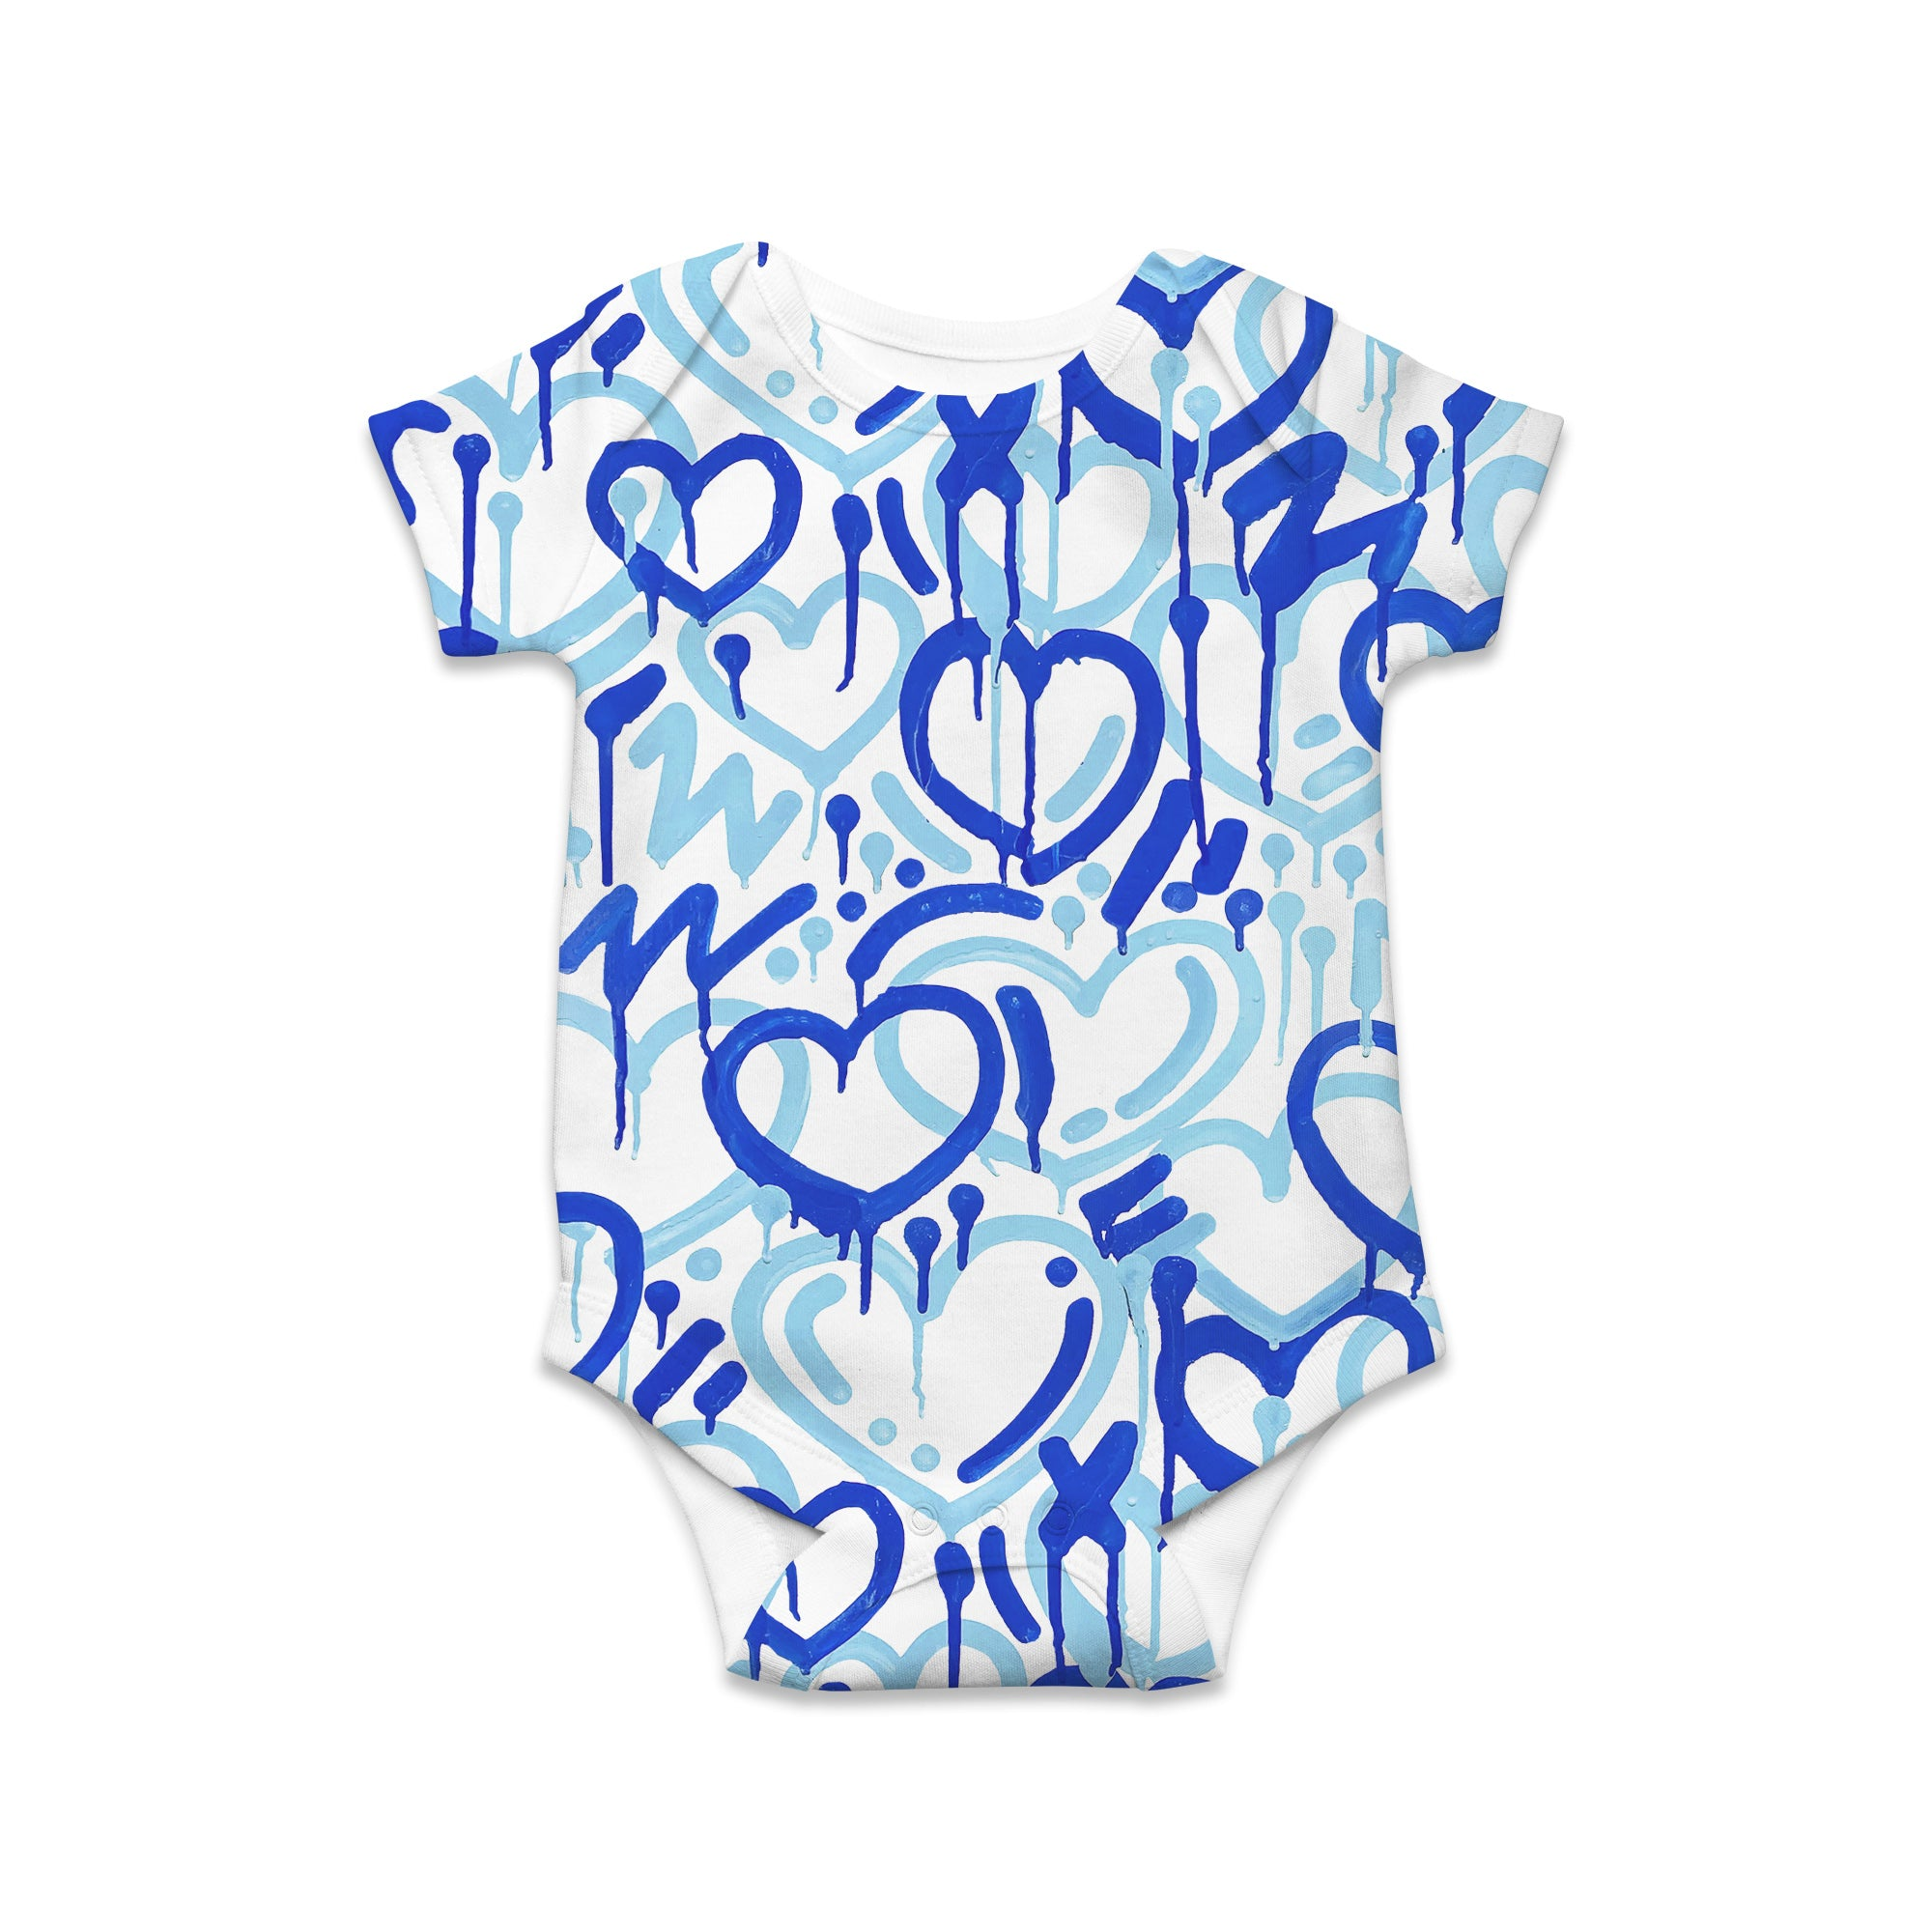 Electric Love Baby Onesie